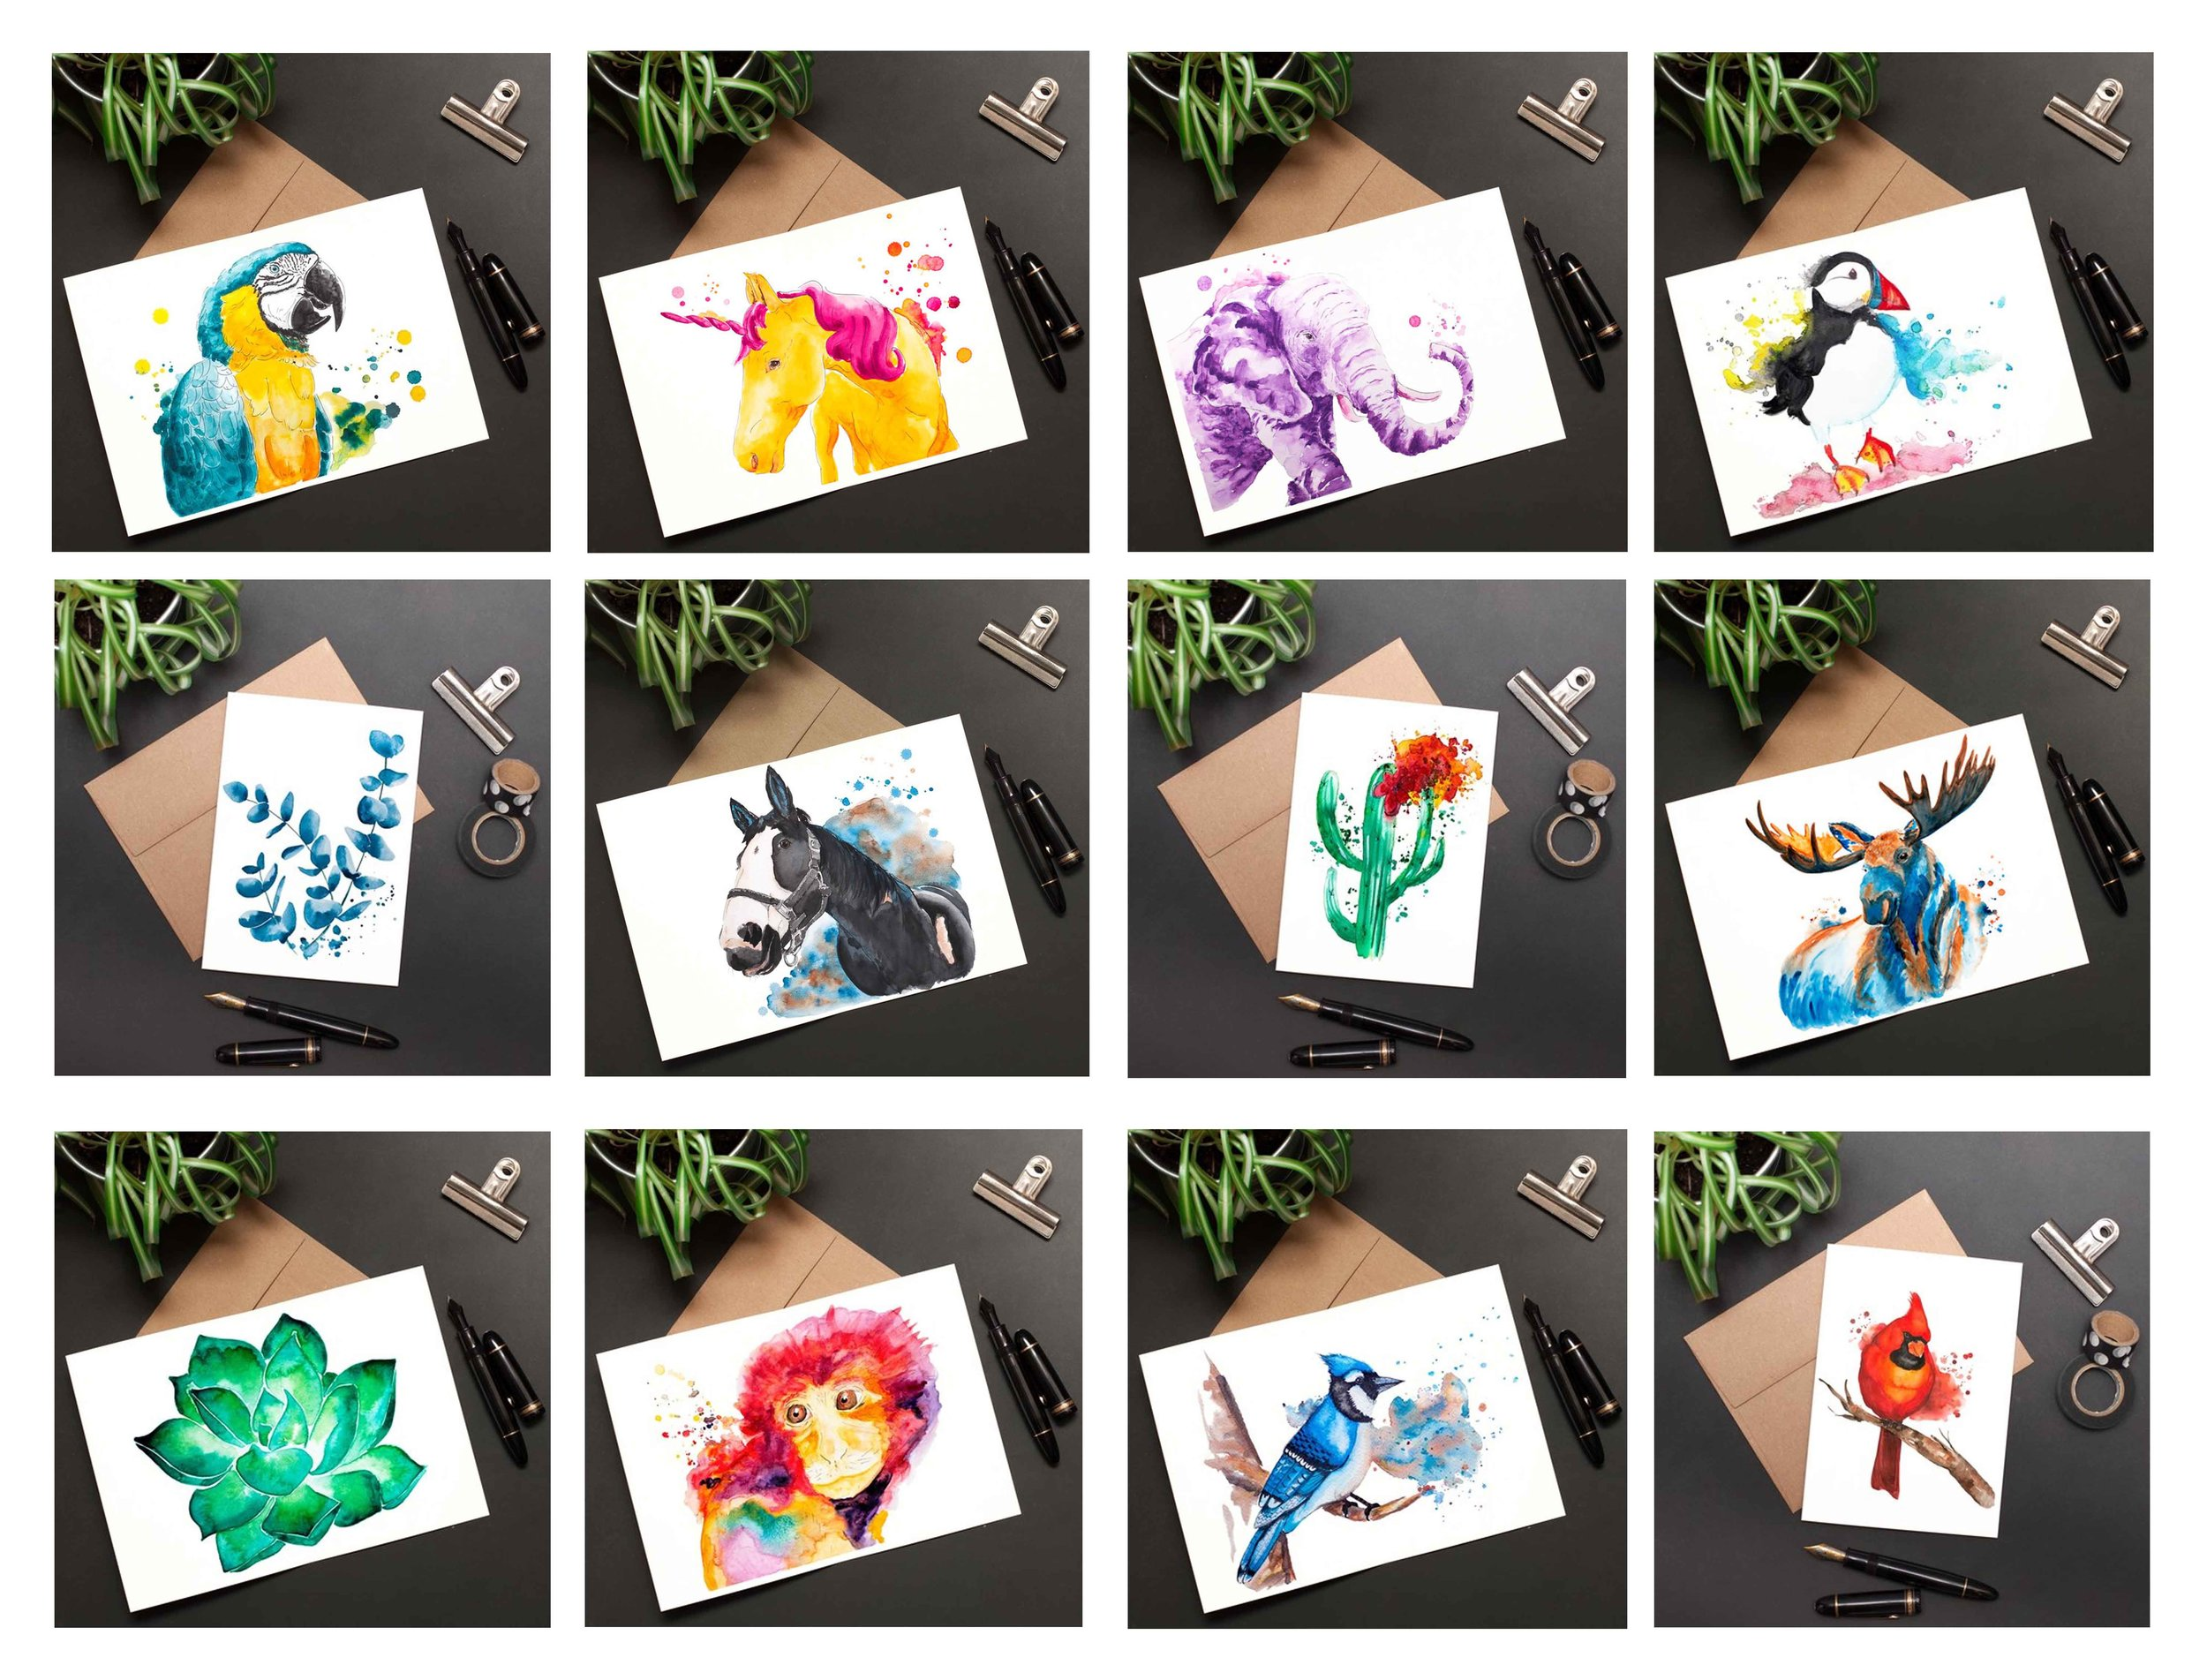 An overview of our collection of colorful and fun watercolor greeting cards that can be framed.